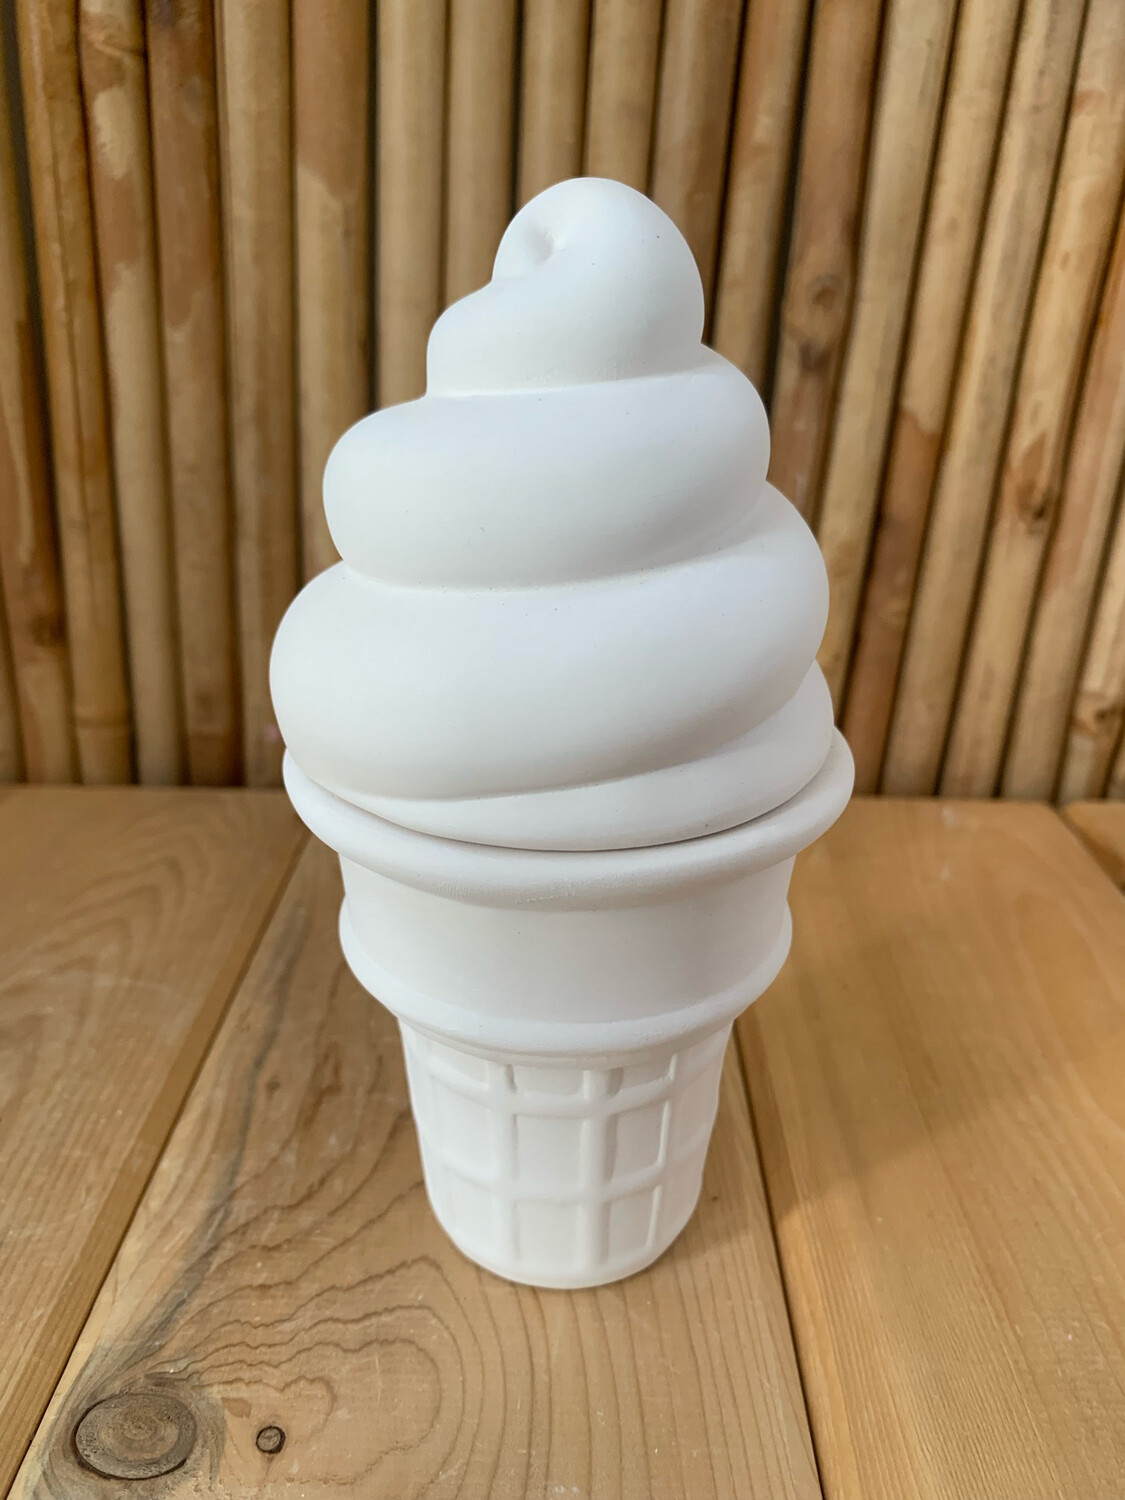 Paint Your Own Pottery - Ceramic   Soft Serve Ice Cream Cone Box Painting Kit